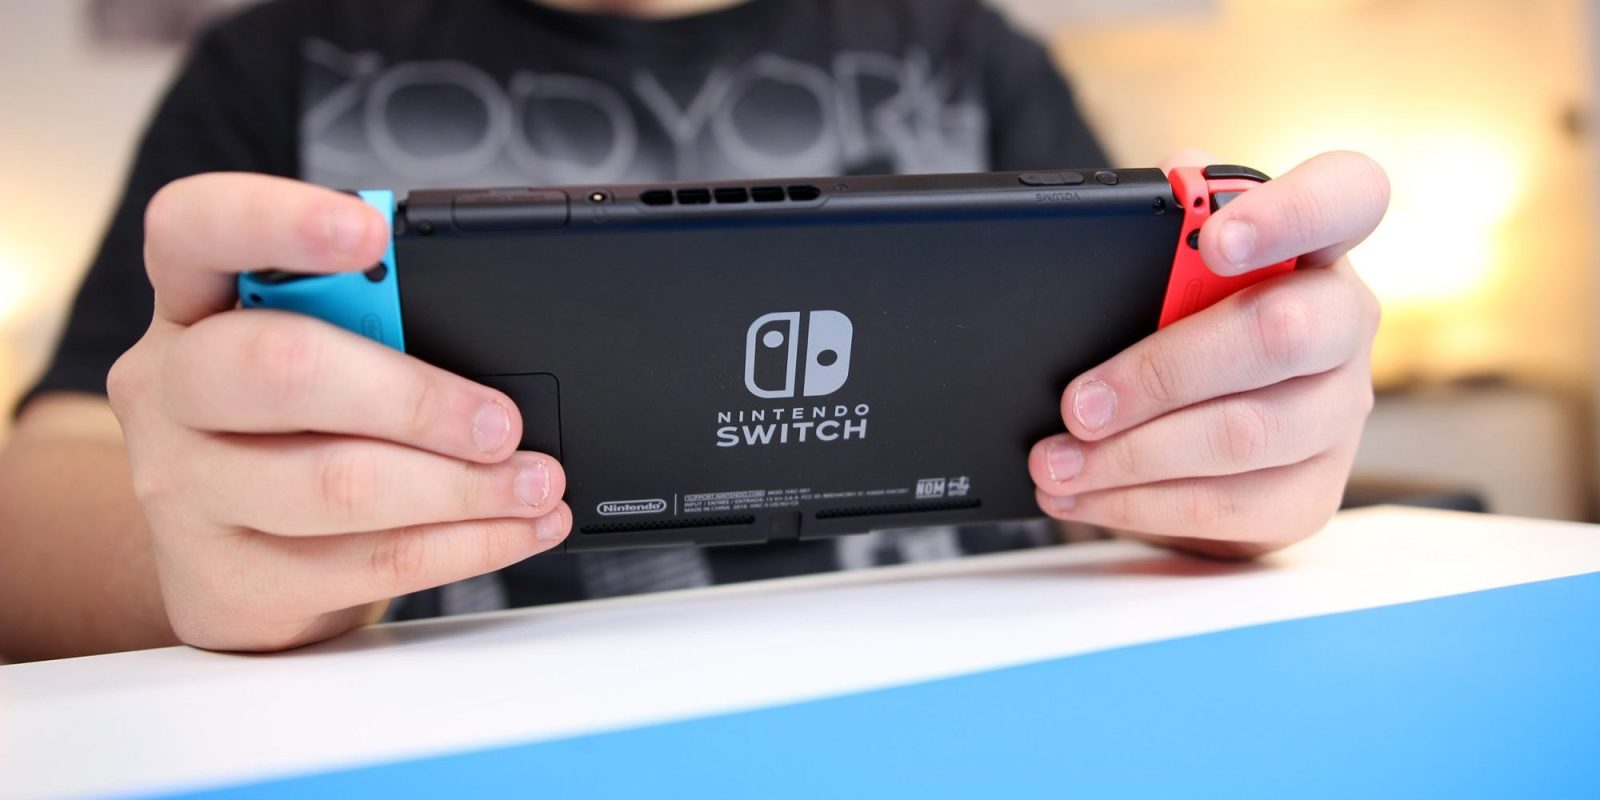 Nintendo Switch gets Android Oreo port w/ LineageOS - 9to5Google